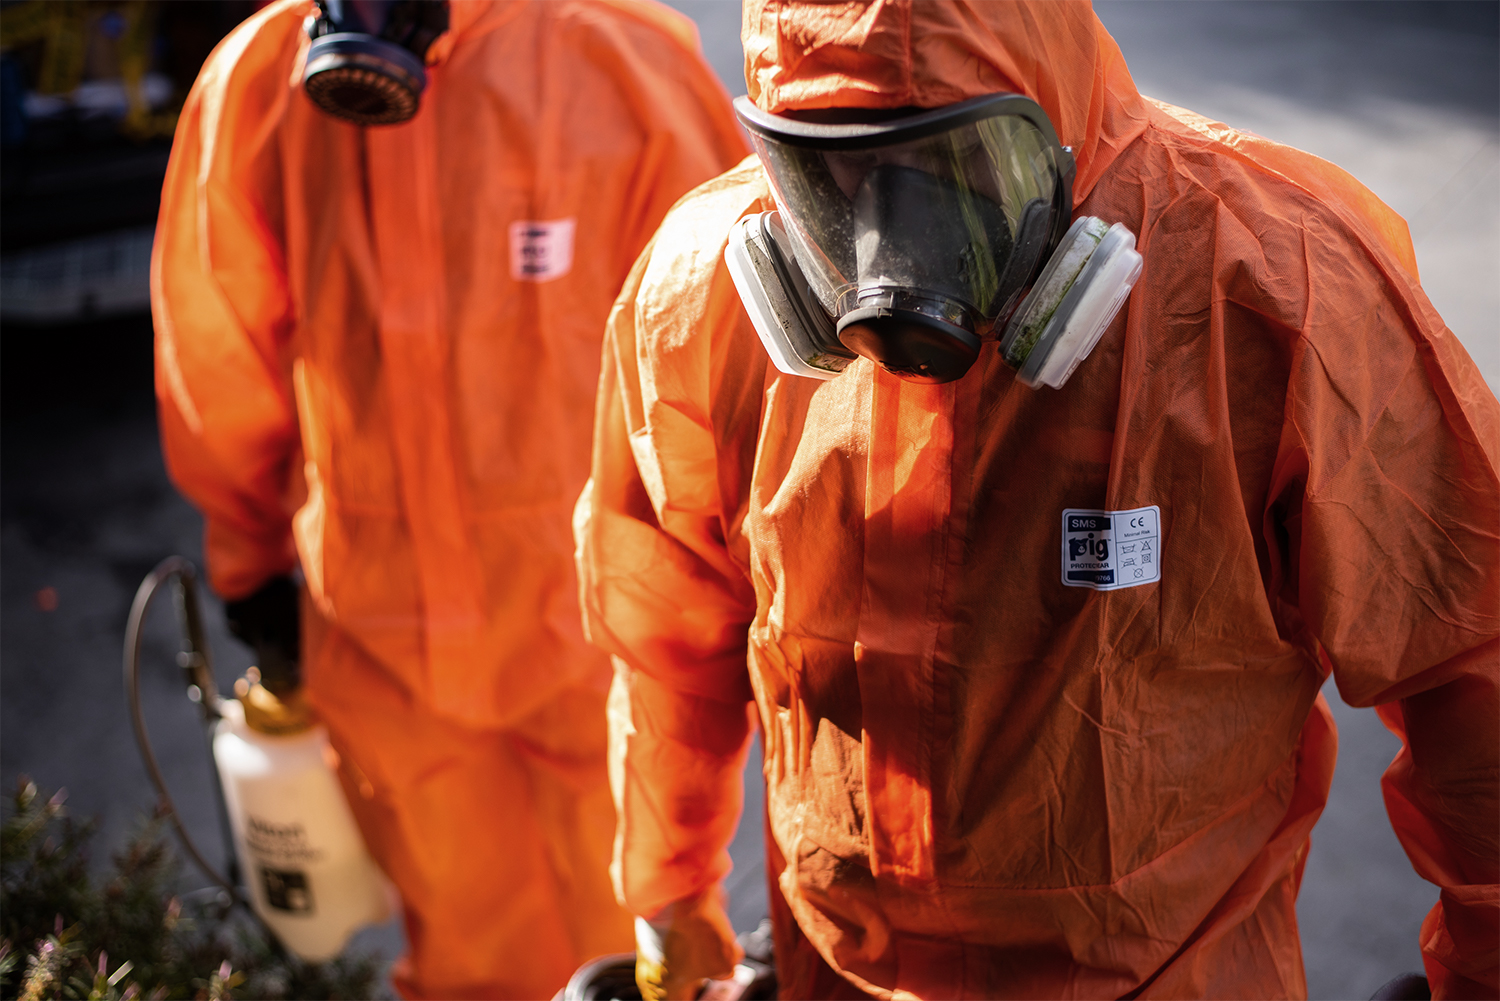 jims-hazmat-removal-meth-decontamination-2-lr